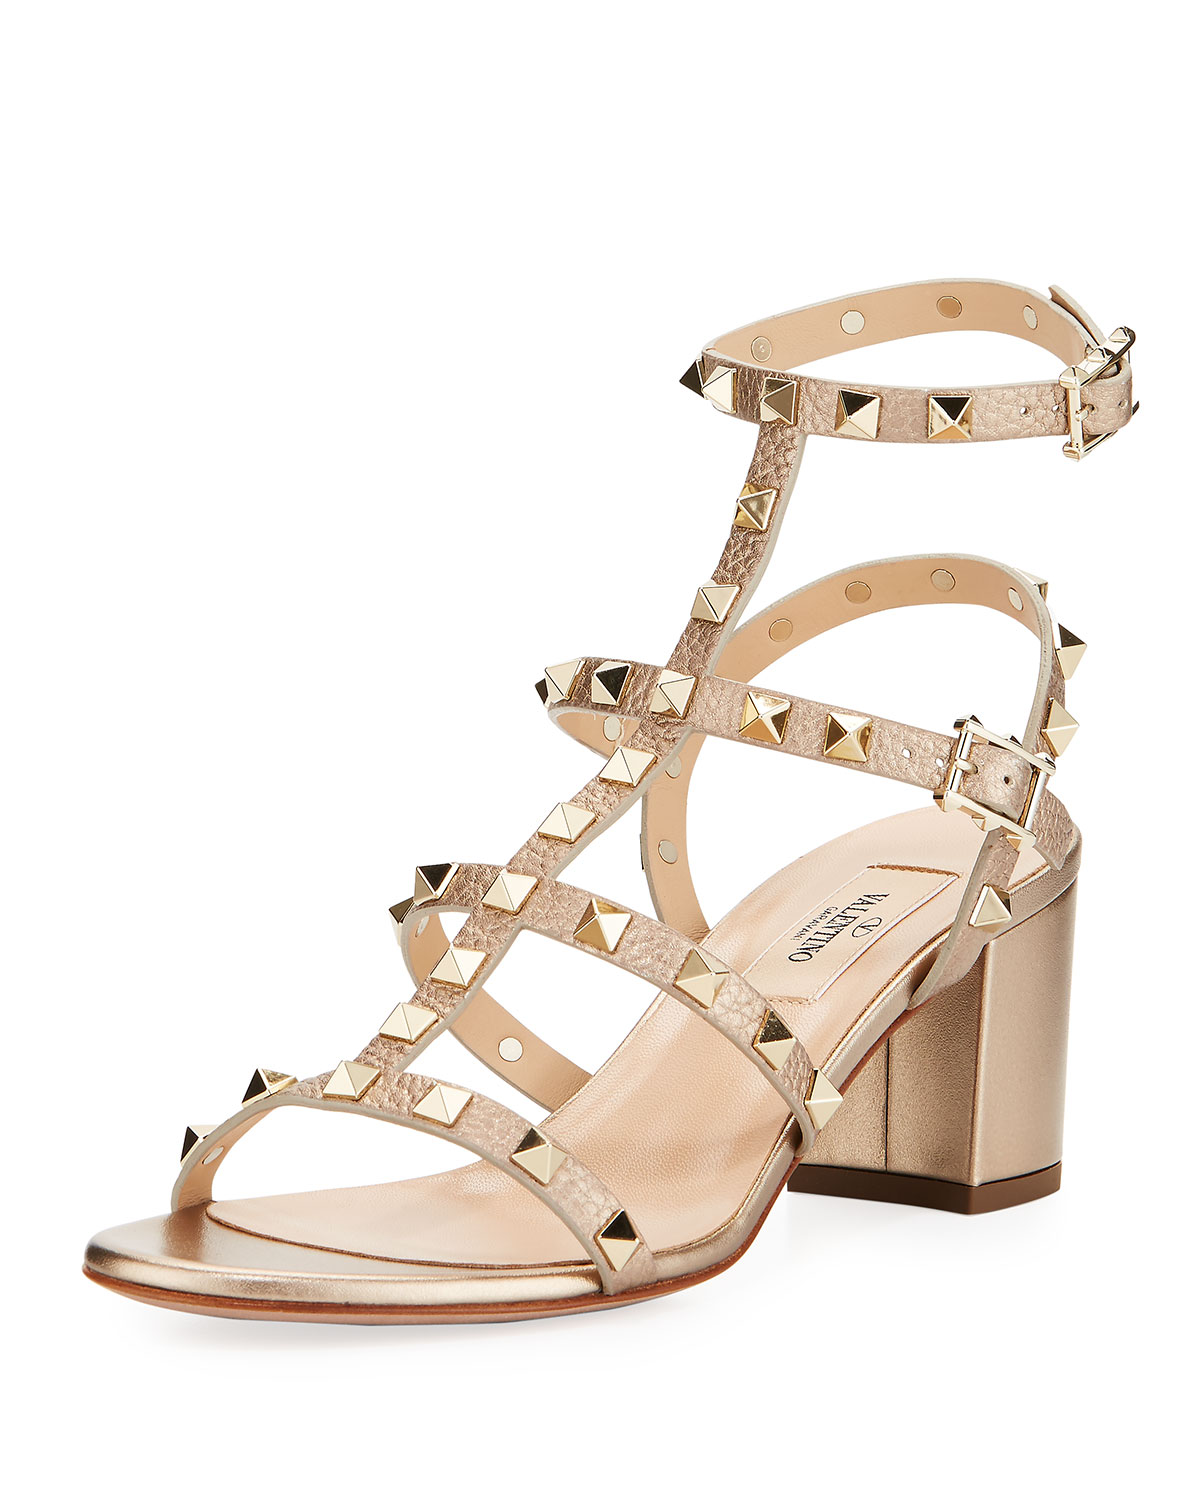 0dce97c707c7 Valentino Garavani Rockstud Leather 60mm City Sandal